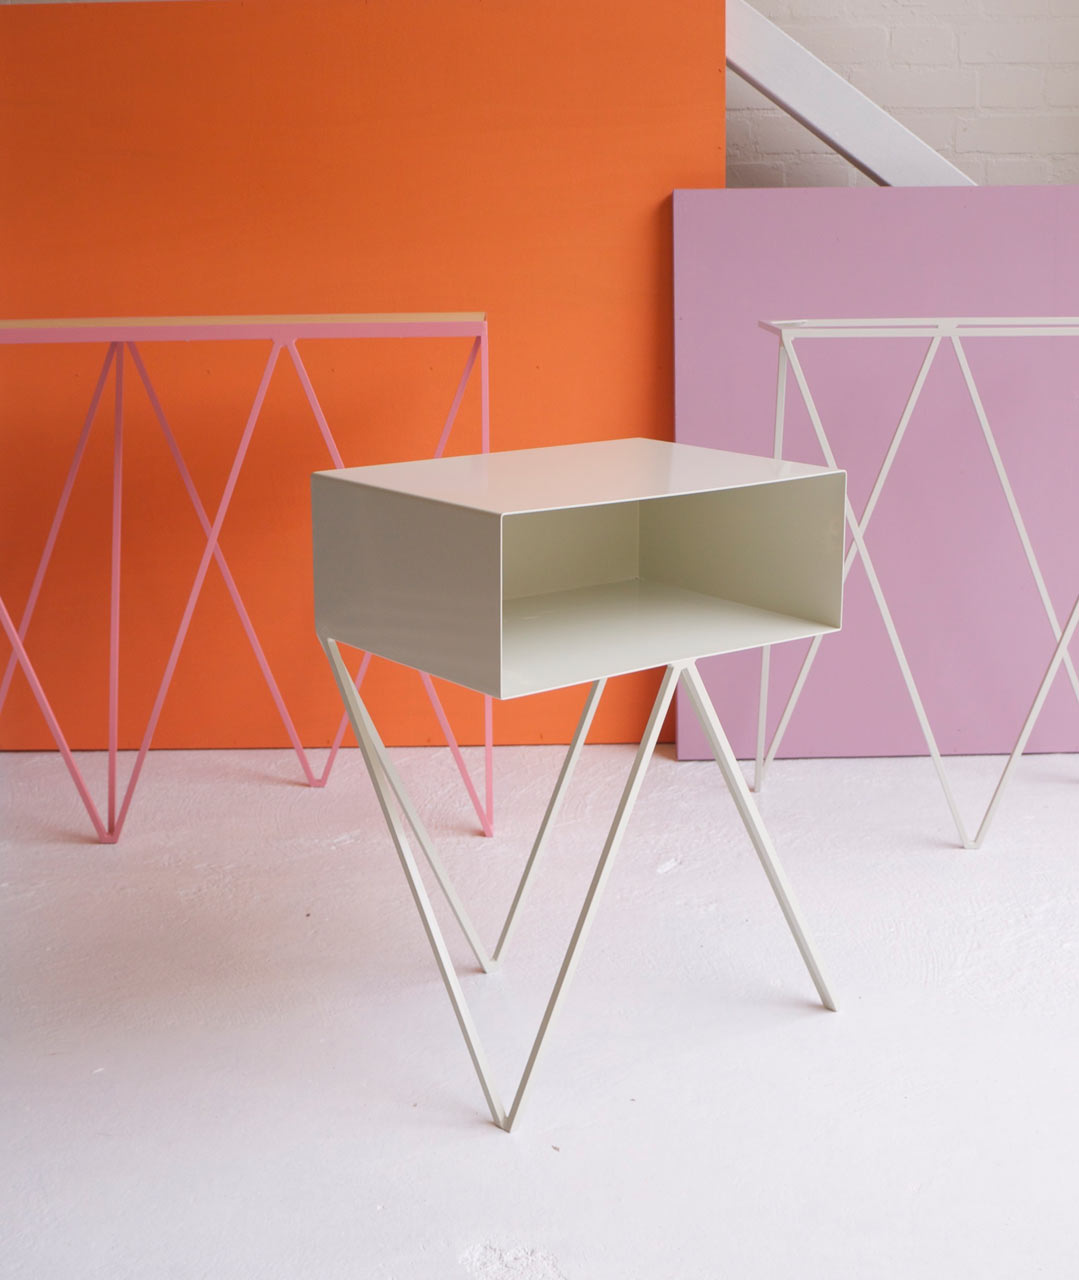 ... New Modern Minimalist Furniture Made Of Steel Design Milk For Where To Buy  Minimalist Furniture ...